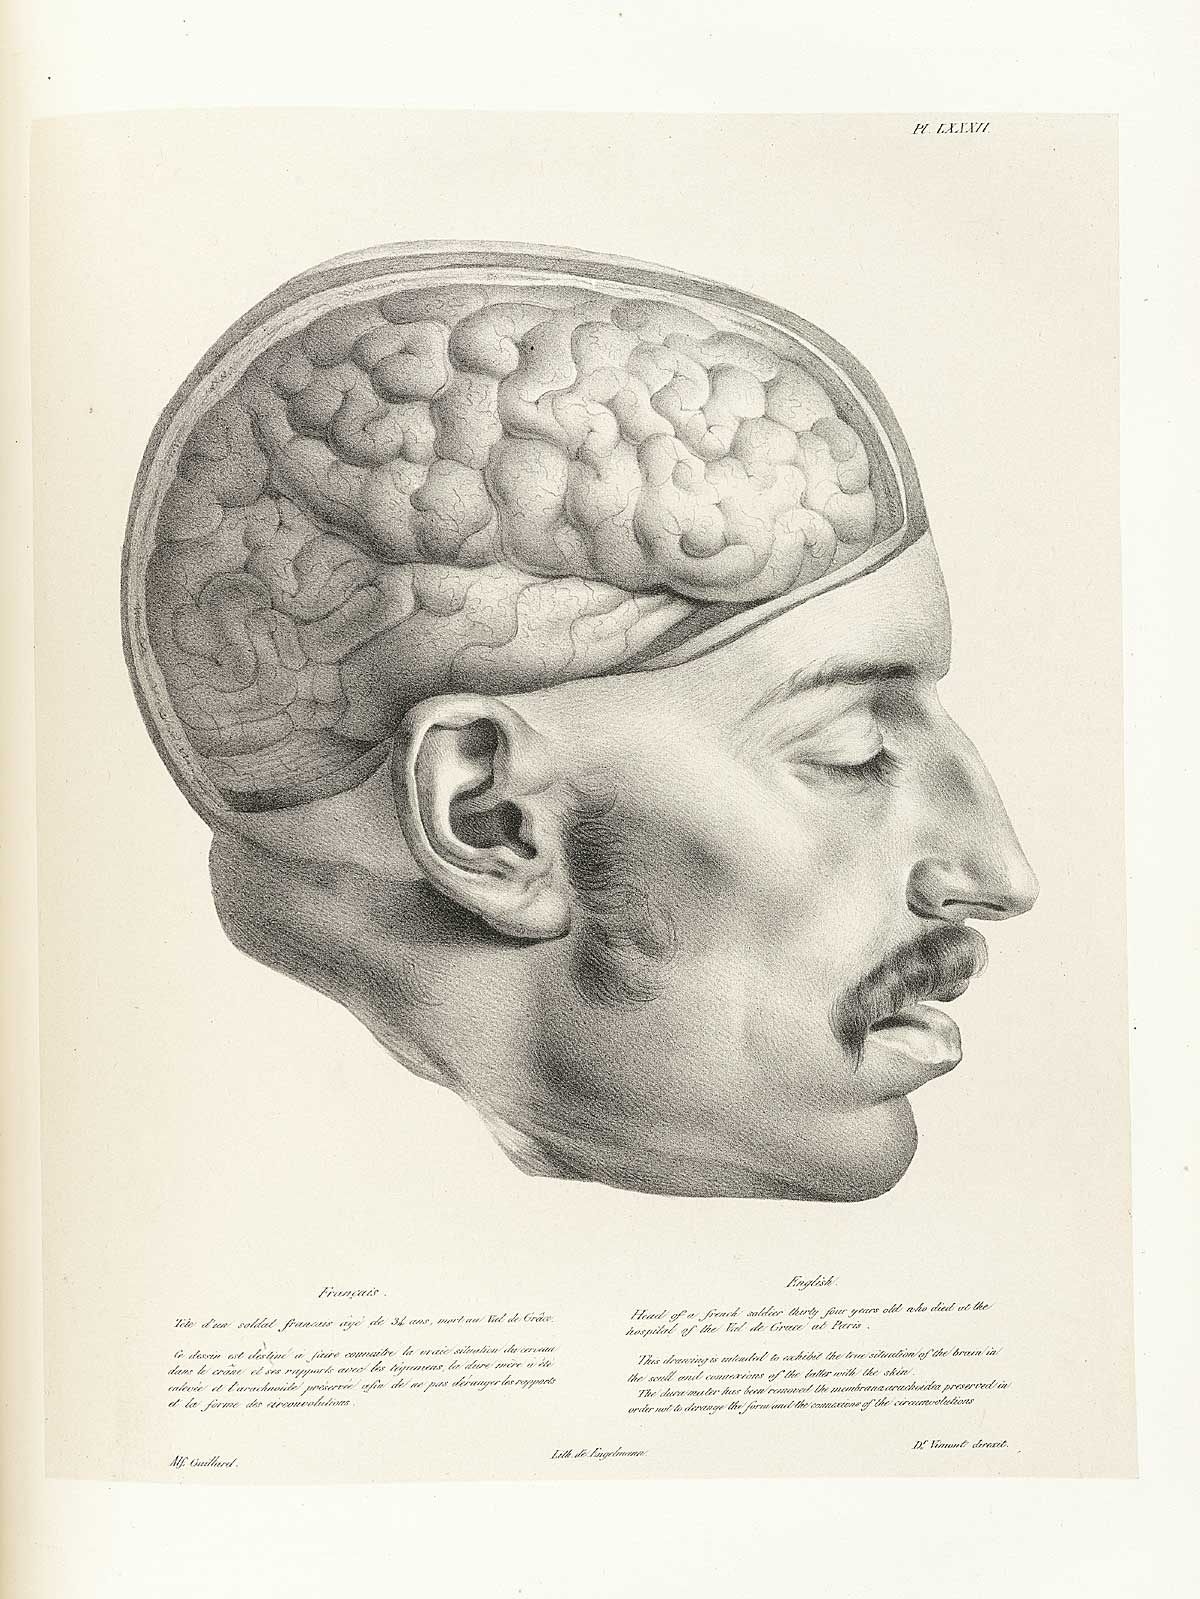 I mage from:http://www.nlm.nih.gov/exhibition/historicalanatomies/vimont_home.html